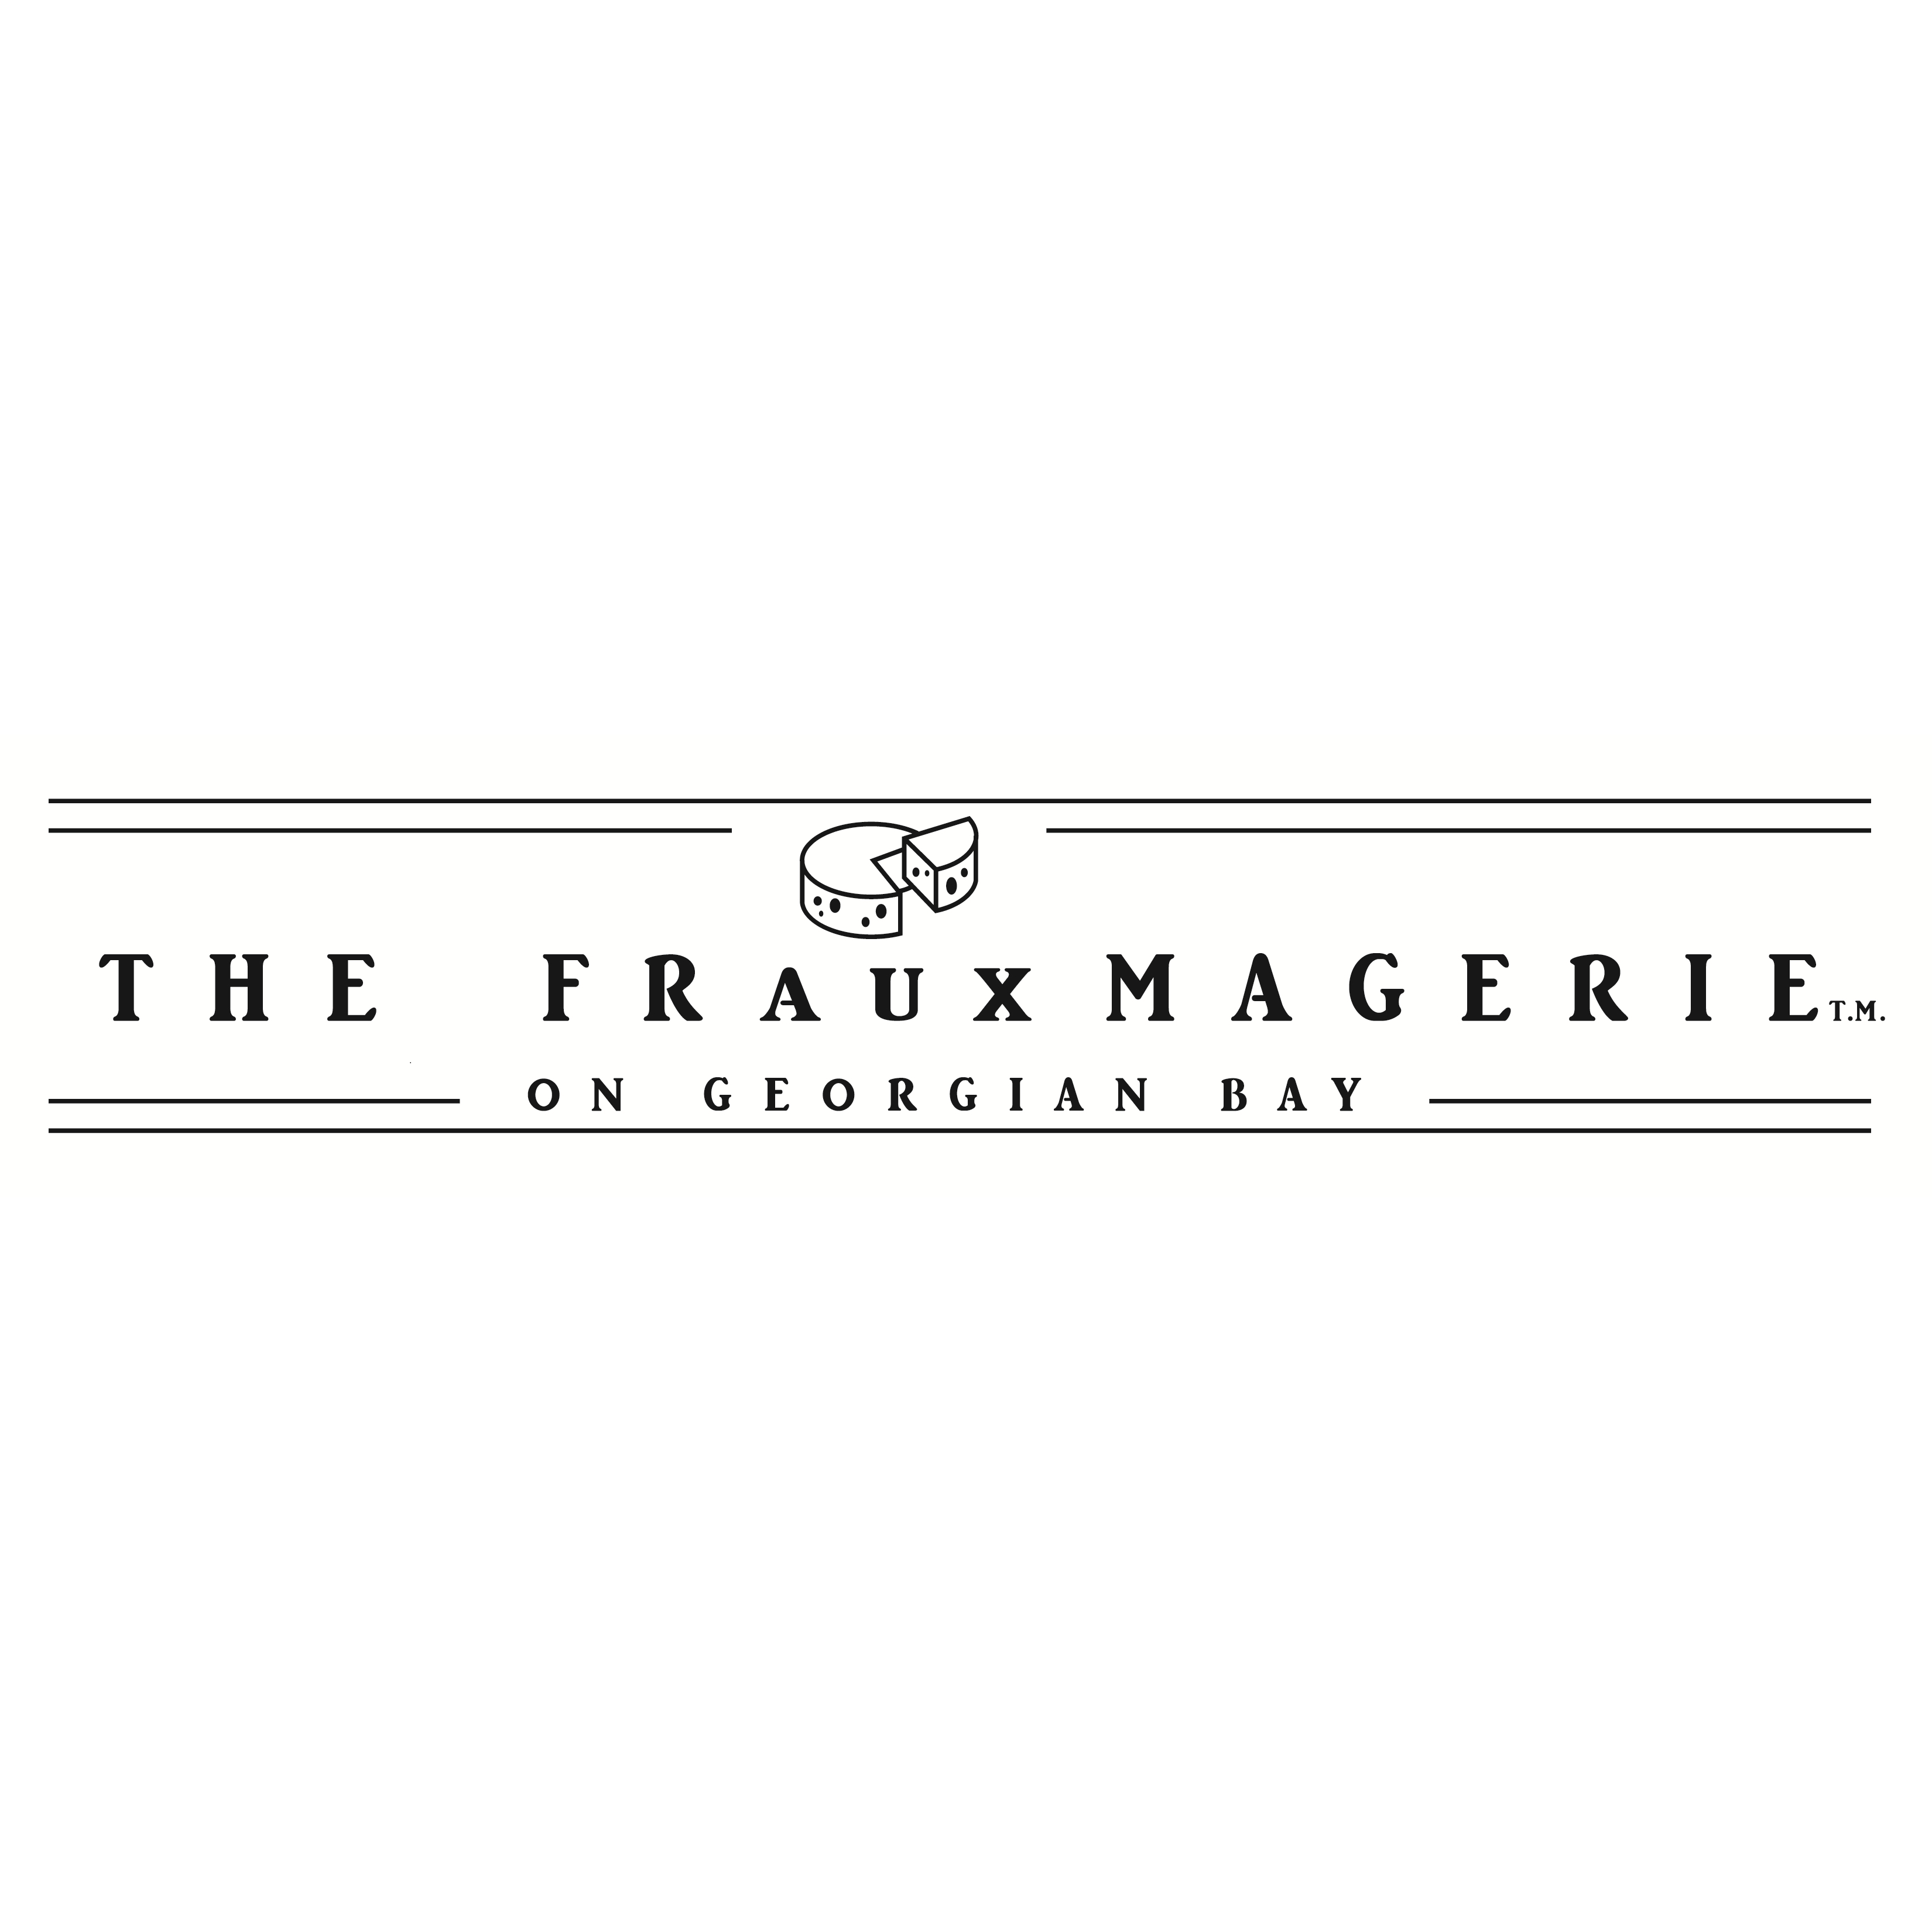 The Frauxmagerie Ltd